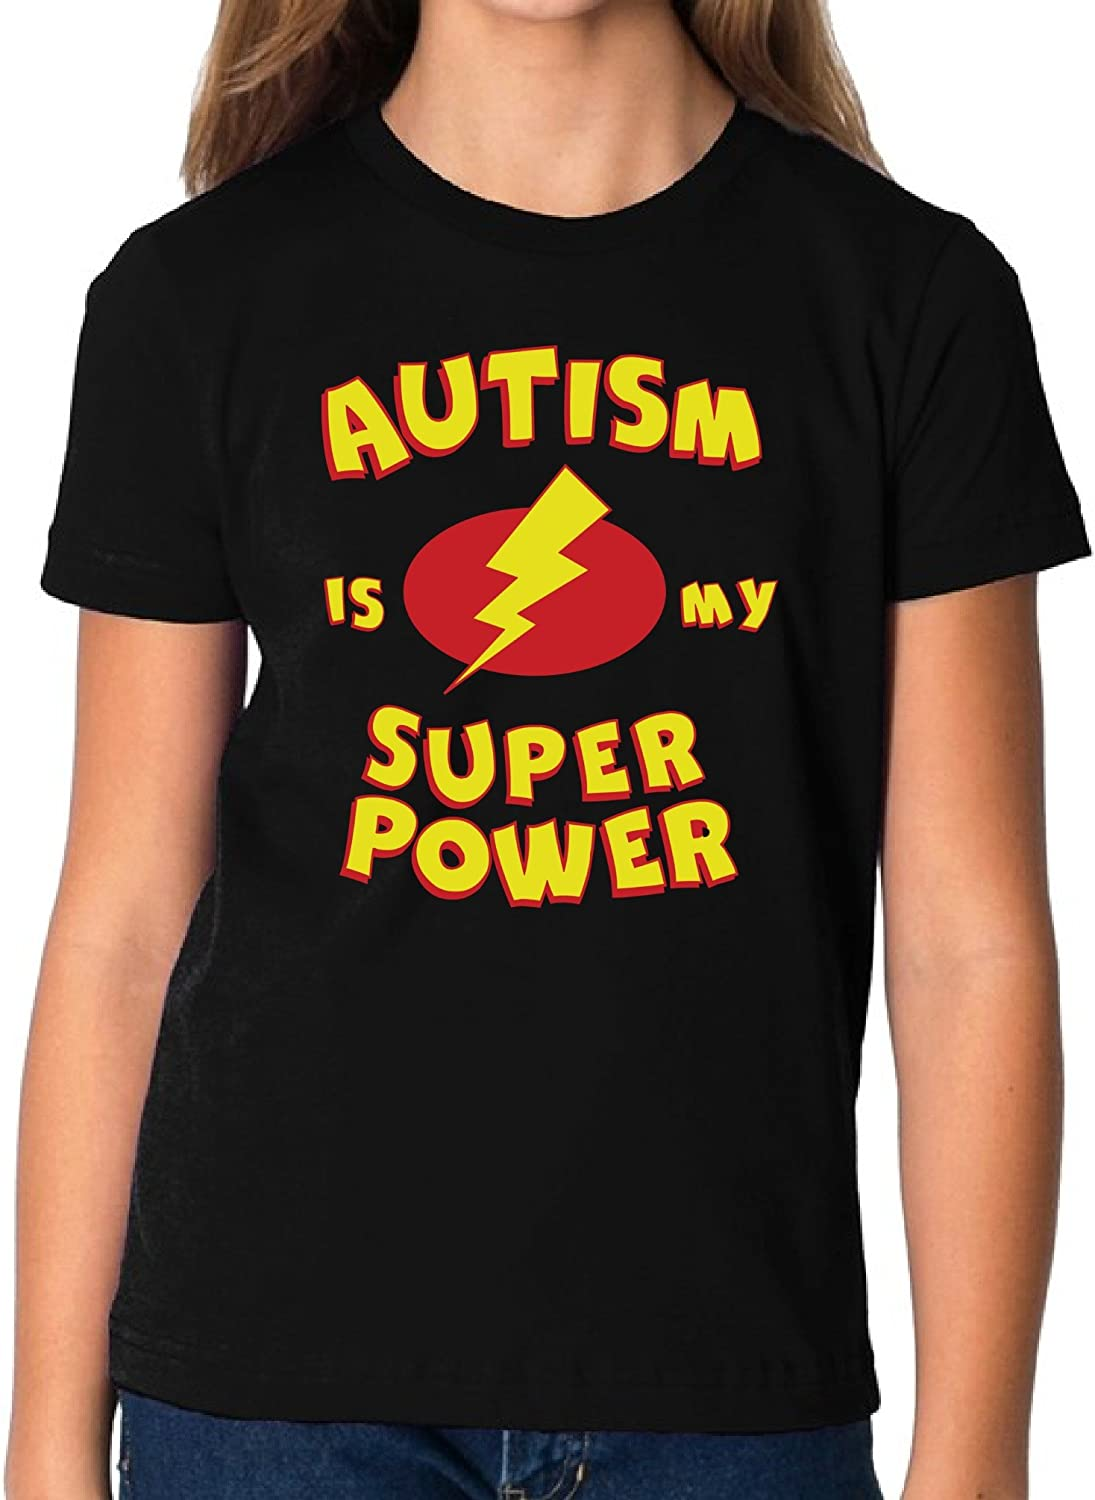 Autism Is My Super Power T-Shirt Awareness Ideas Youth/'s Adult /& Kids Tee Top